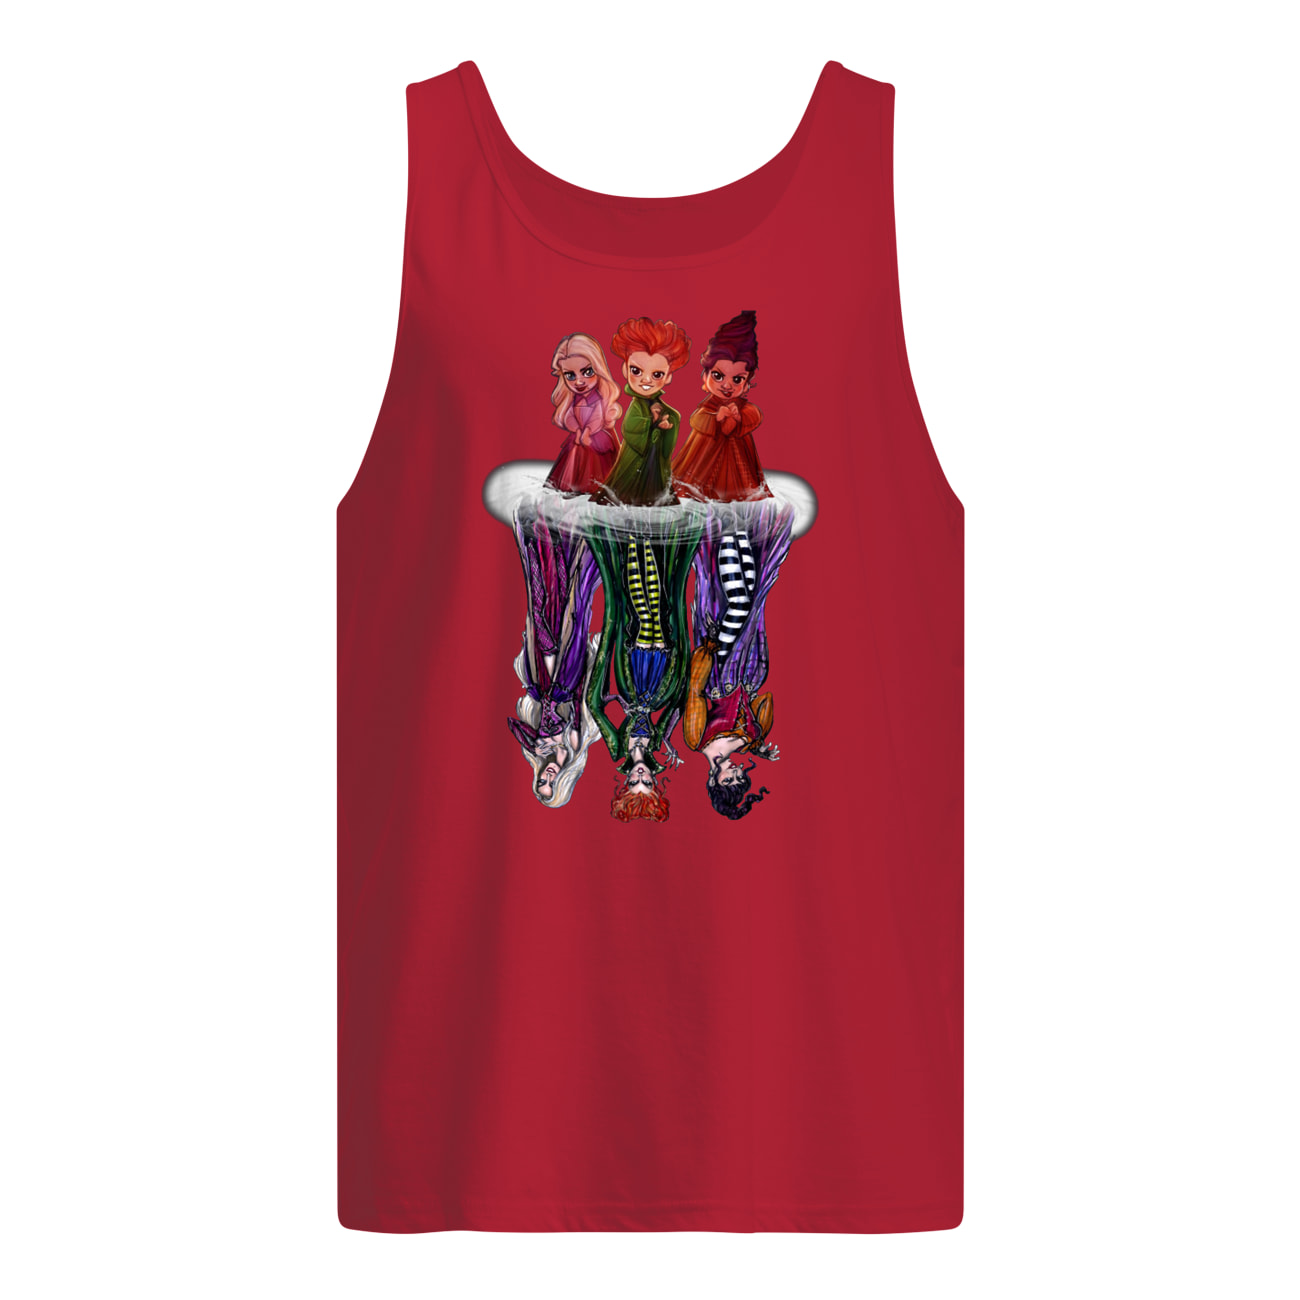 Hocus pocus characters chibi water reflection tank top